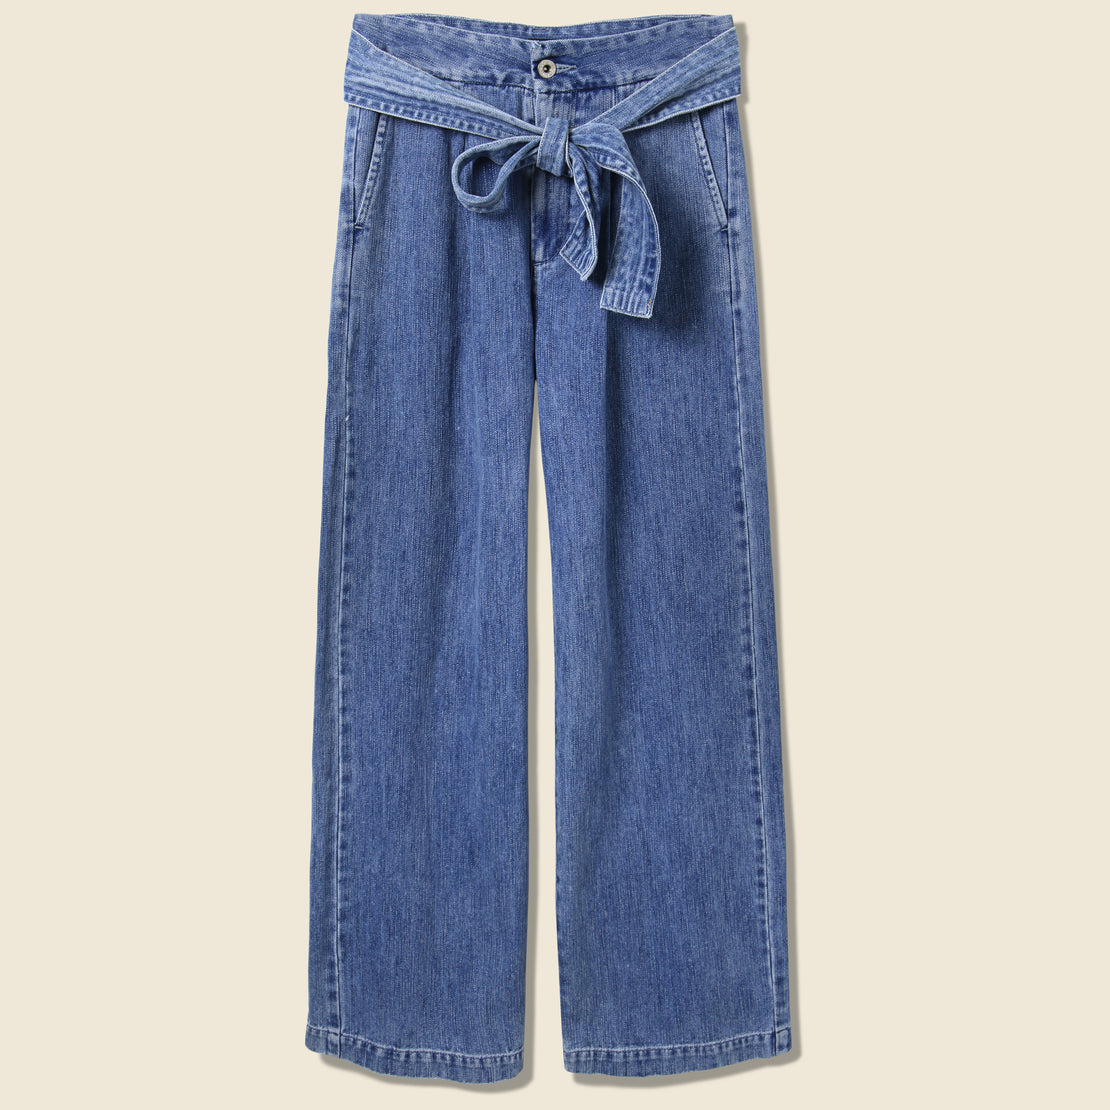 Levis Made & Crafted Tie Trouser - Blue Bell